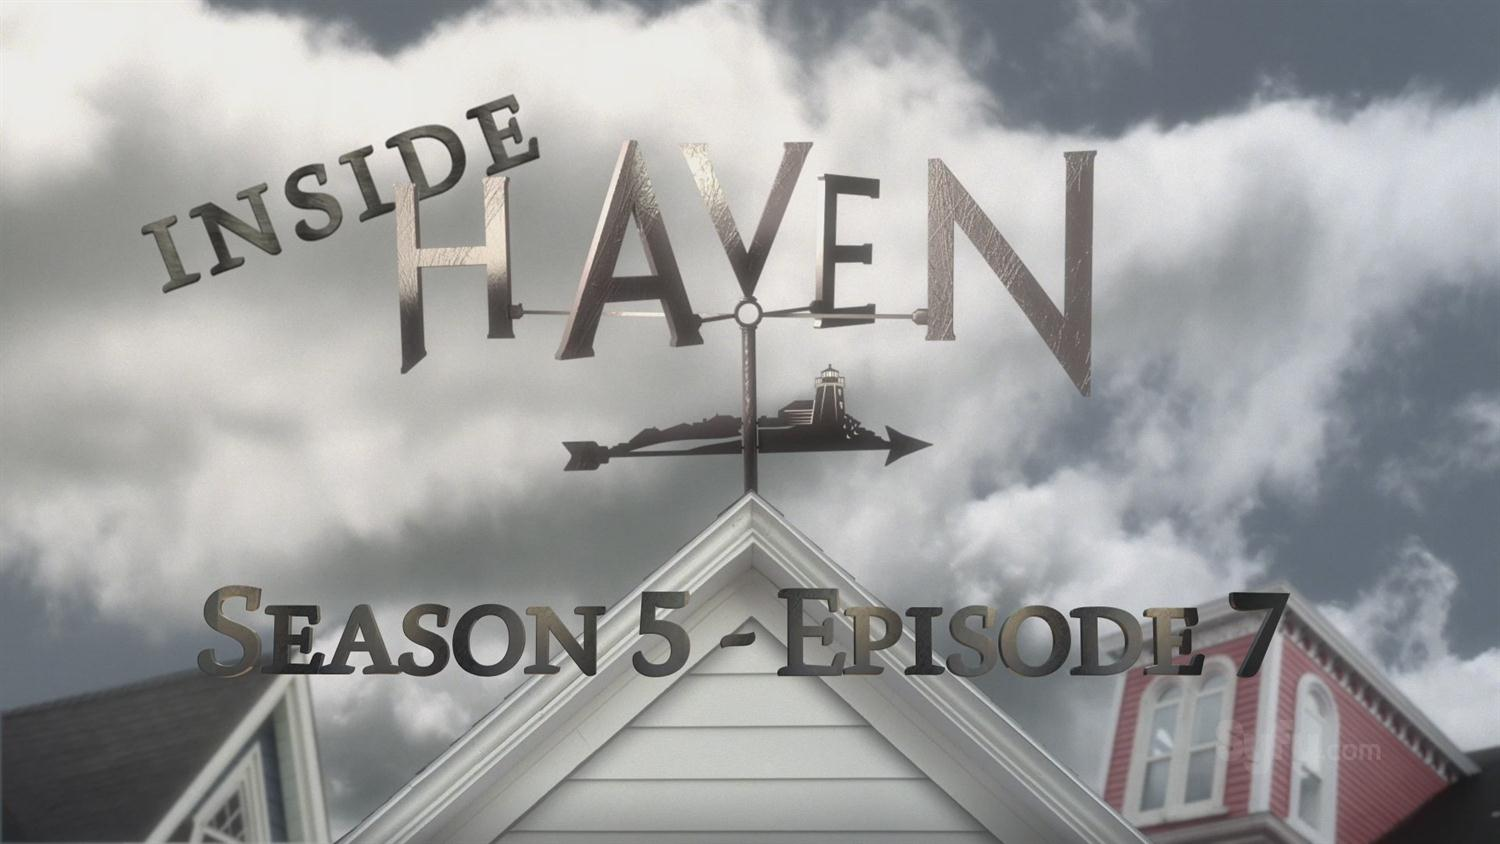 Inside Haven - Season 5, Episode 7